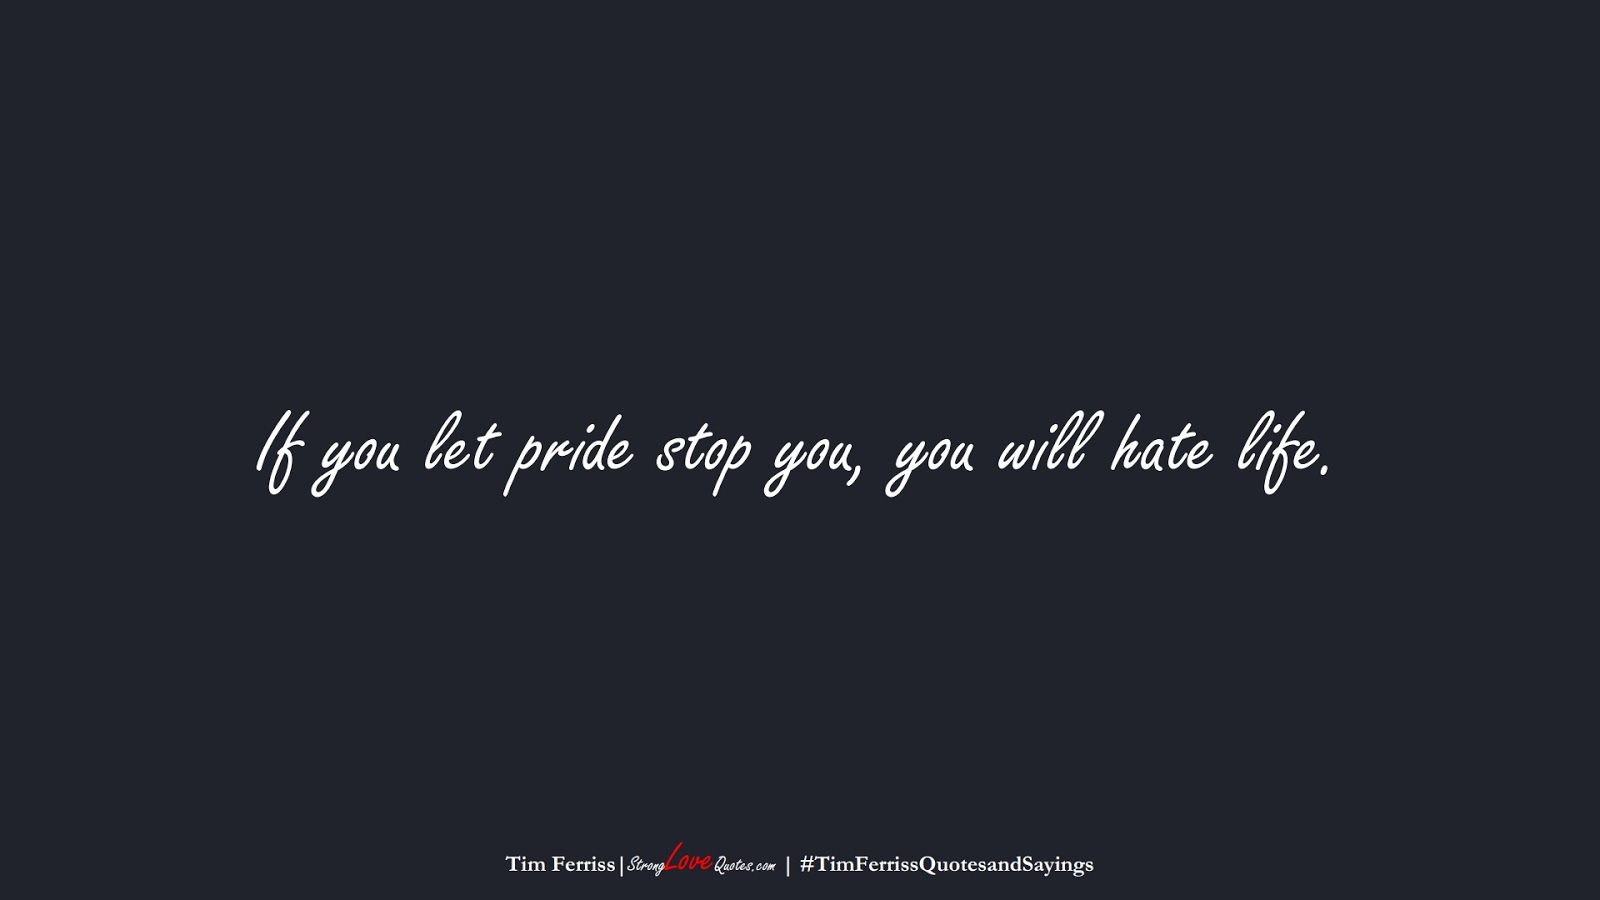 If you let pride stop you, you will hate life. (Tim Ferriss);  #TimFerrissQuotesandSayings